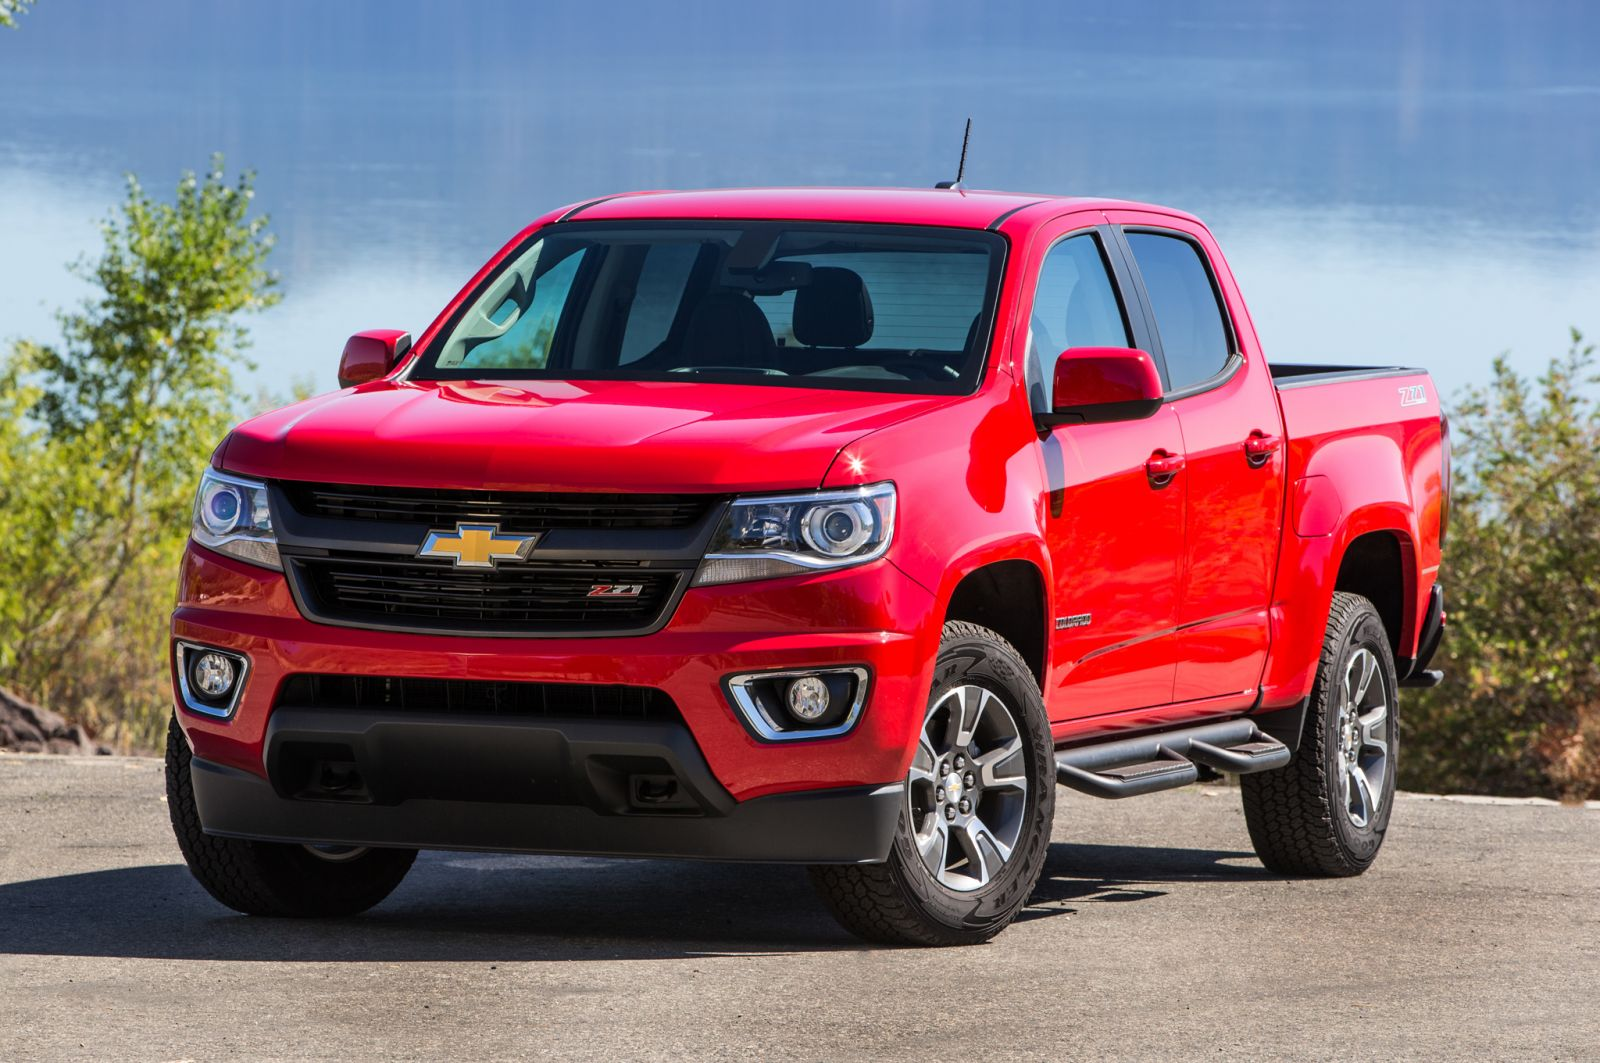 2015-Chevrolet-Colorado-Z71-front-three-quarters-view1